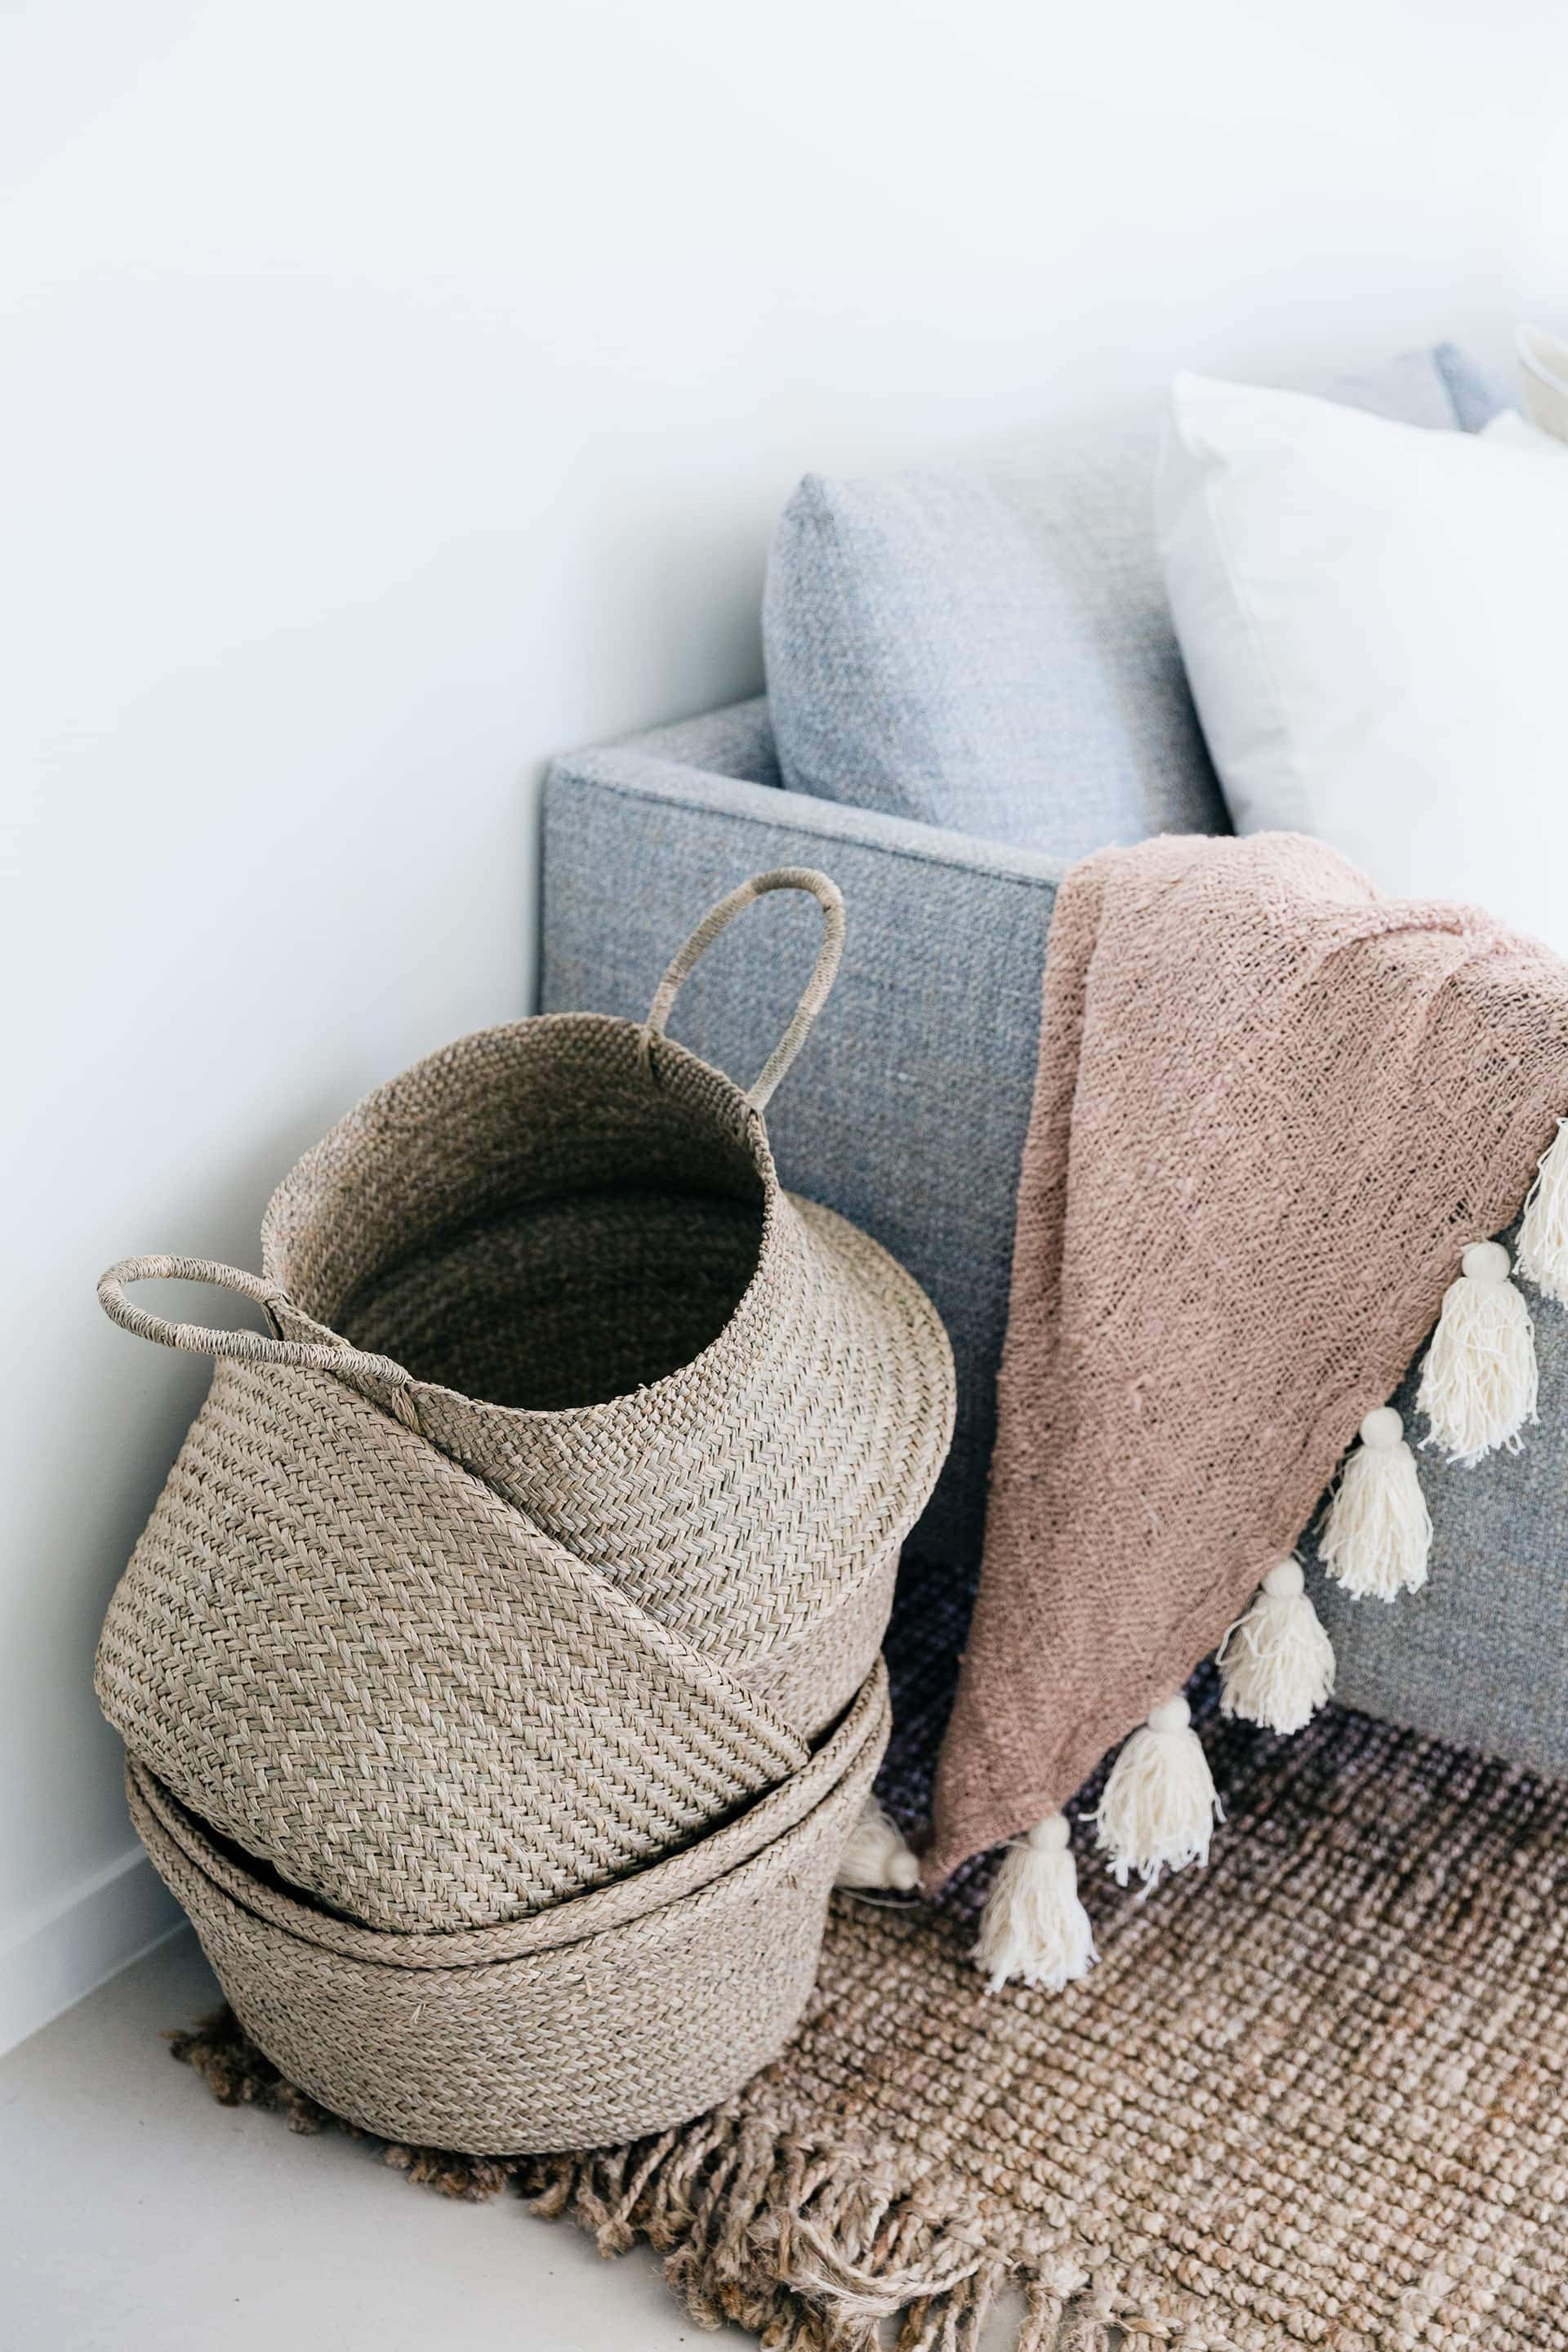 belly baskets by southbound in living room with sisal rug